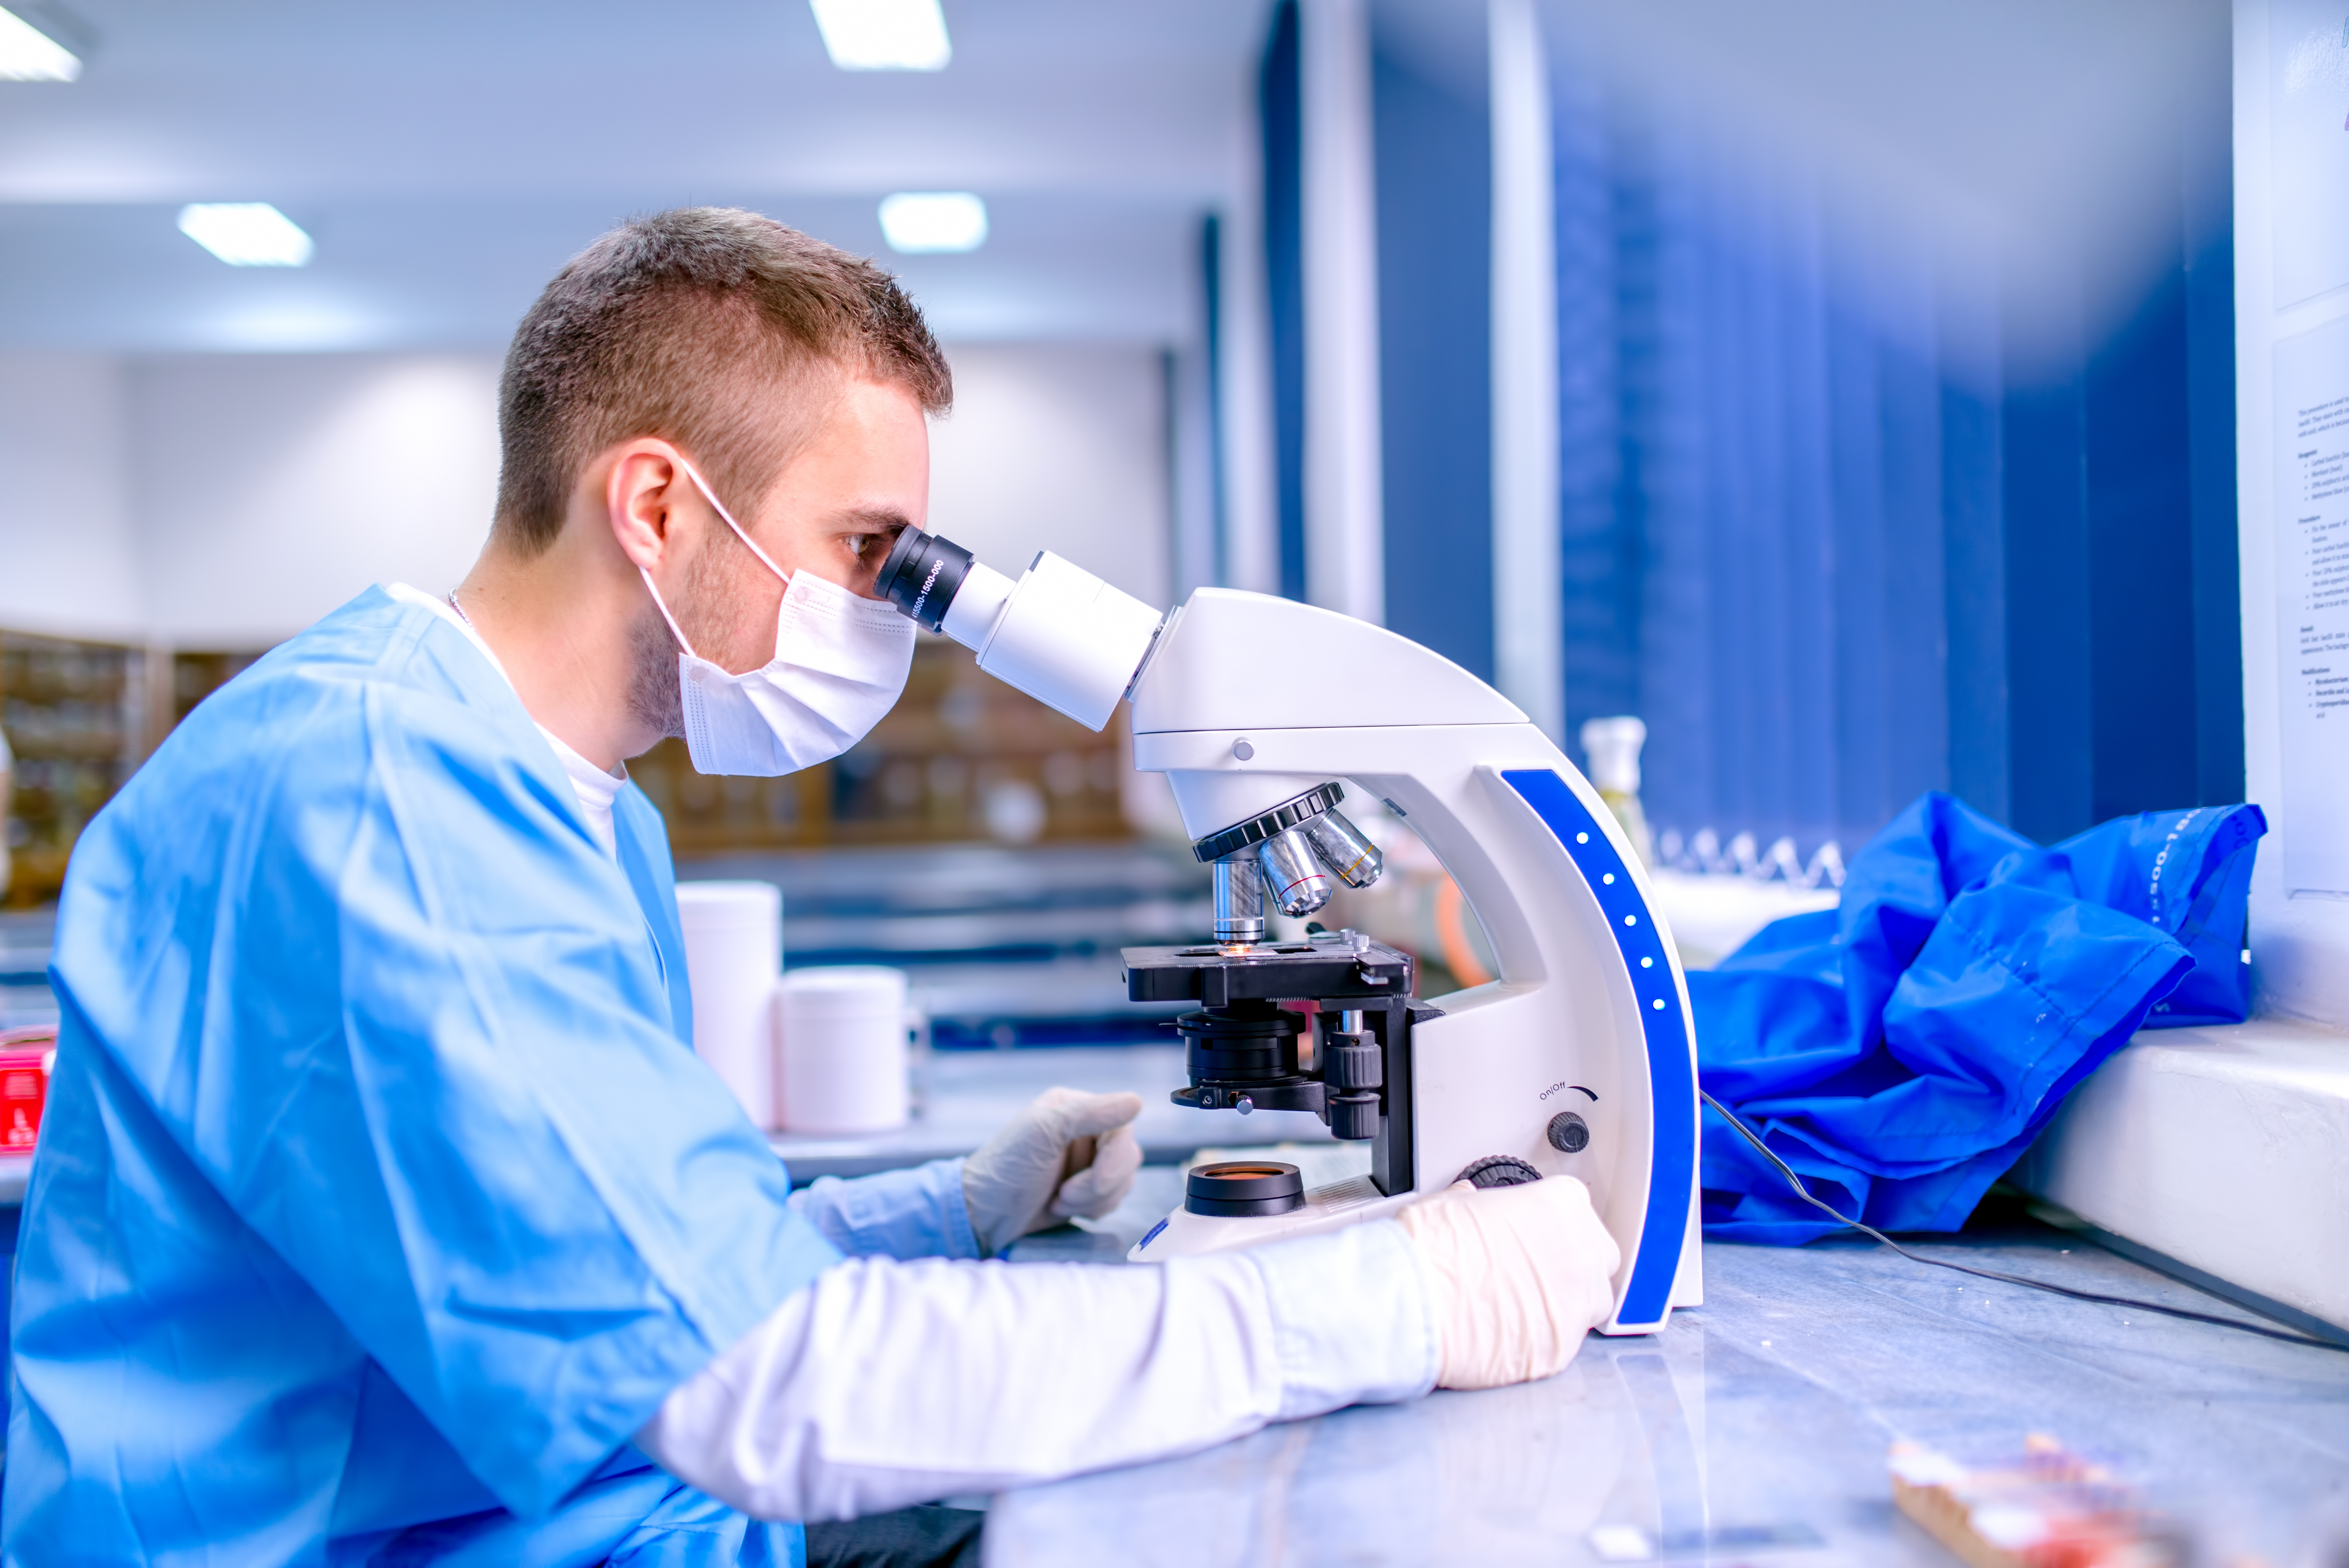 Scientist working in chemistry laboratory, examining samples at microscop